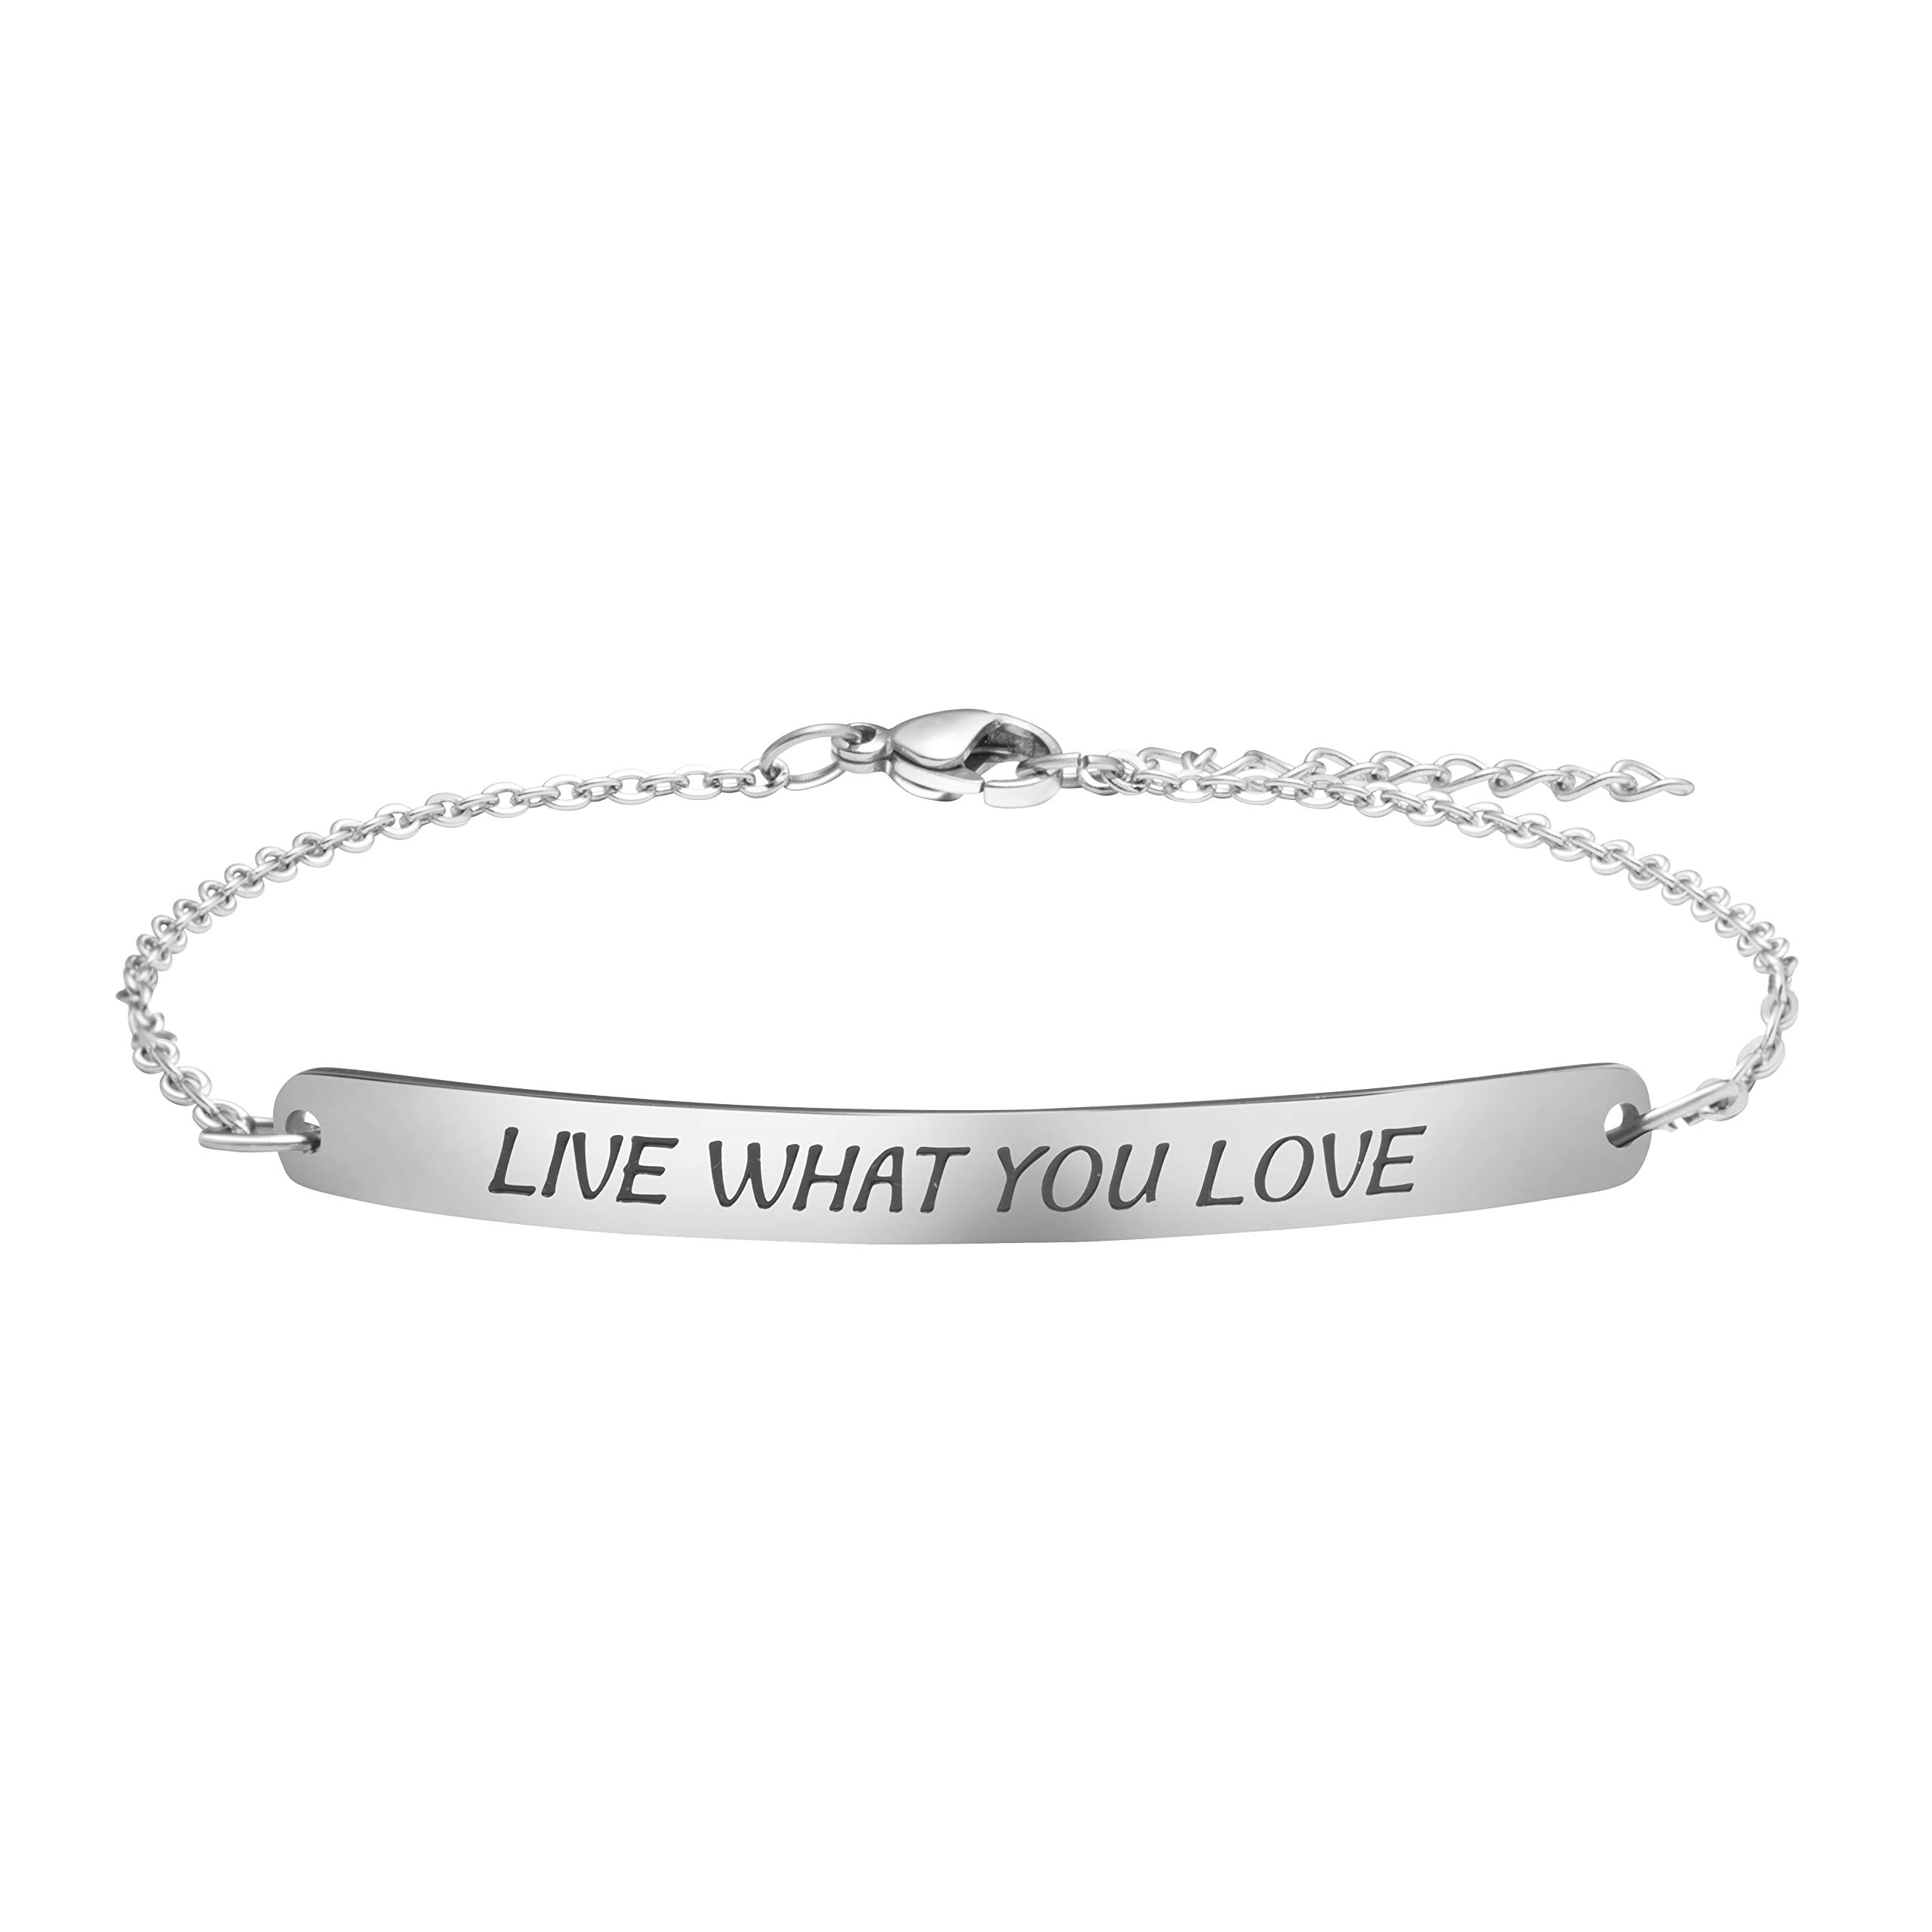 Joycuff Inspirational Mantra Bracelet Stainless Steel Silver Bar Chain for Women Live What You Love